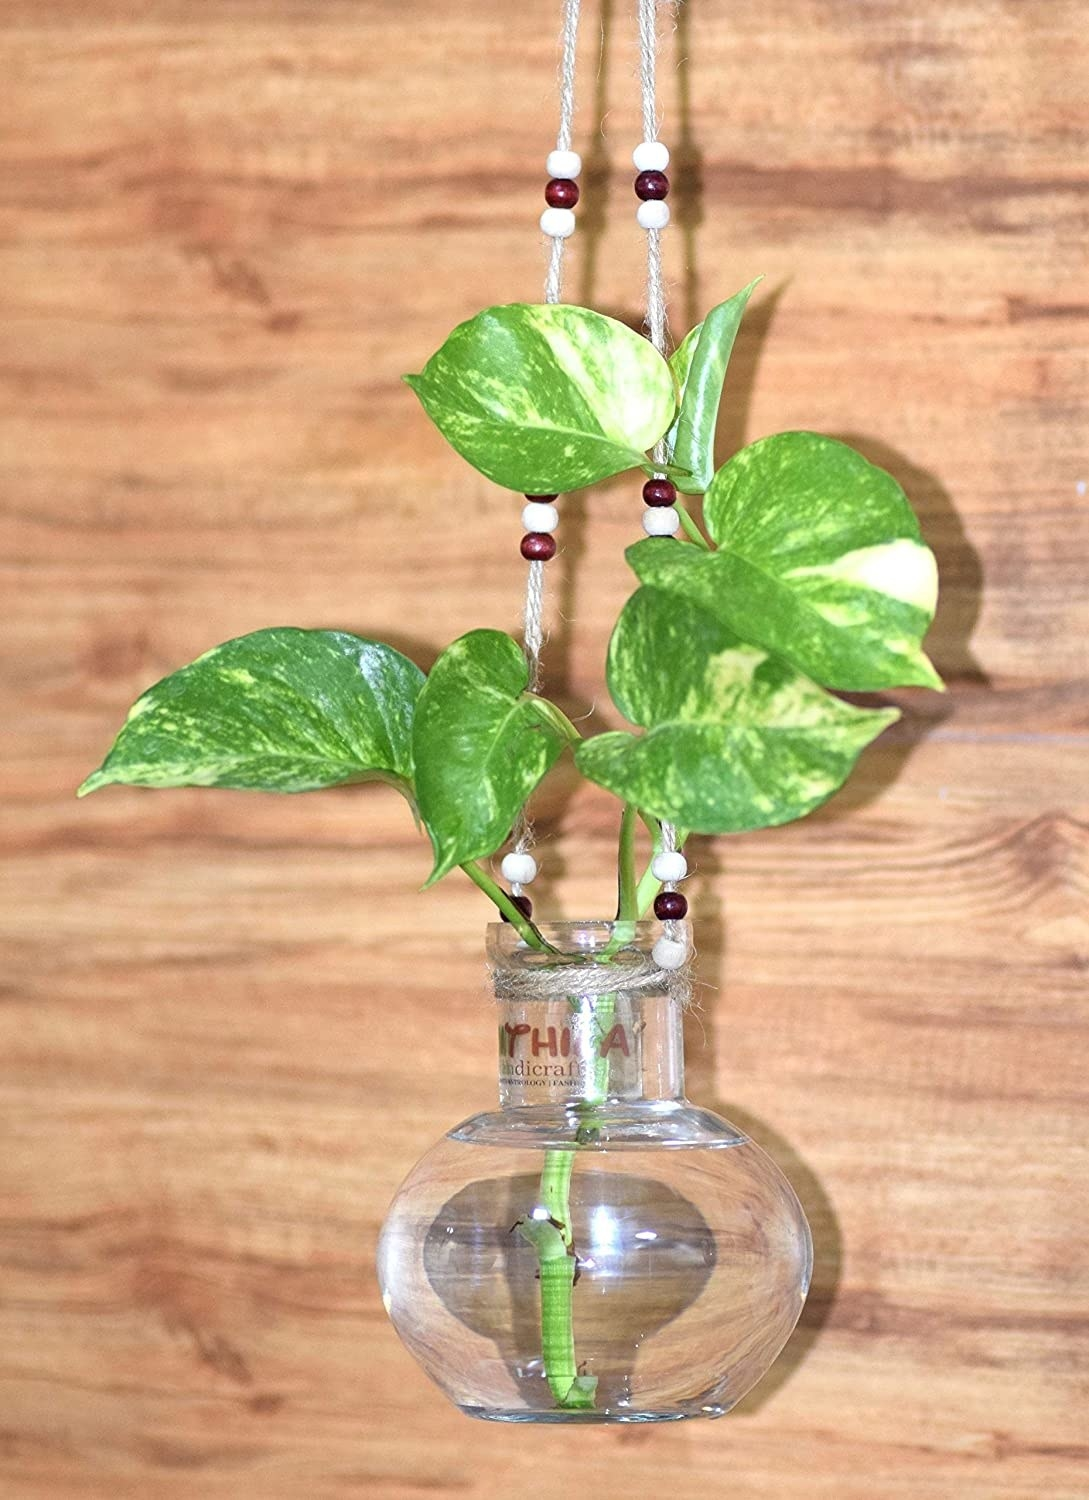 A transparent hanging vase with water and a plant in it